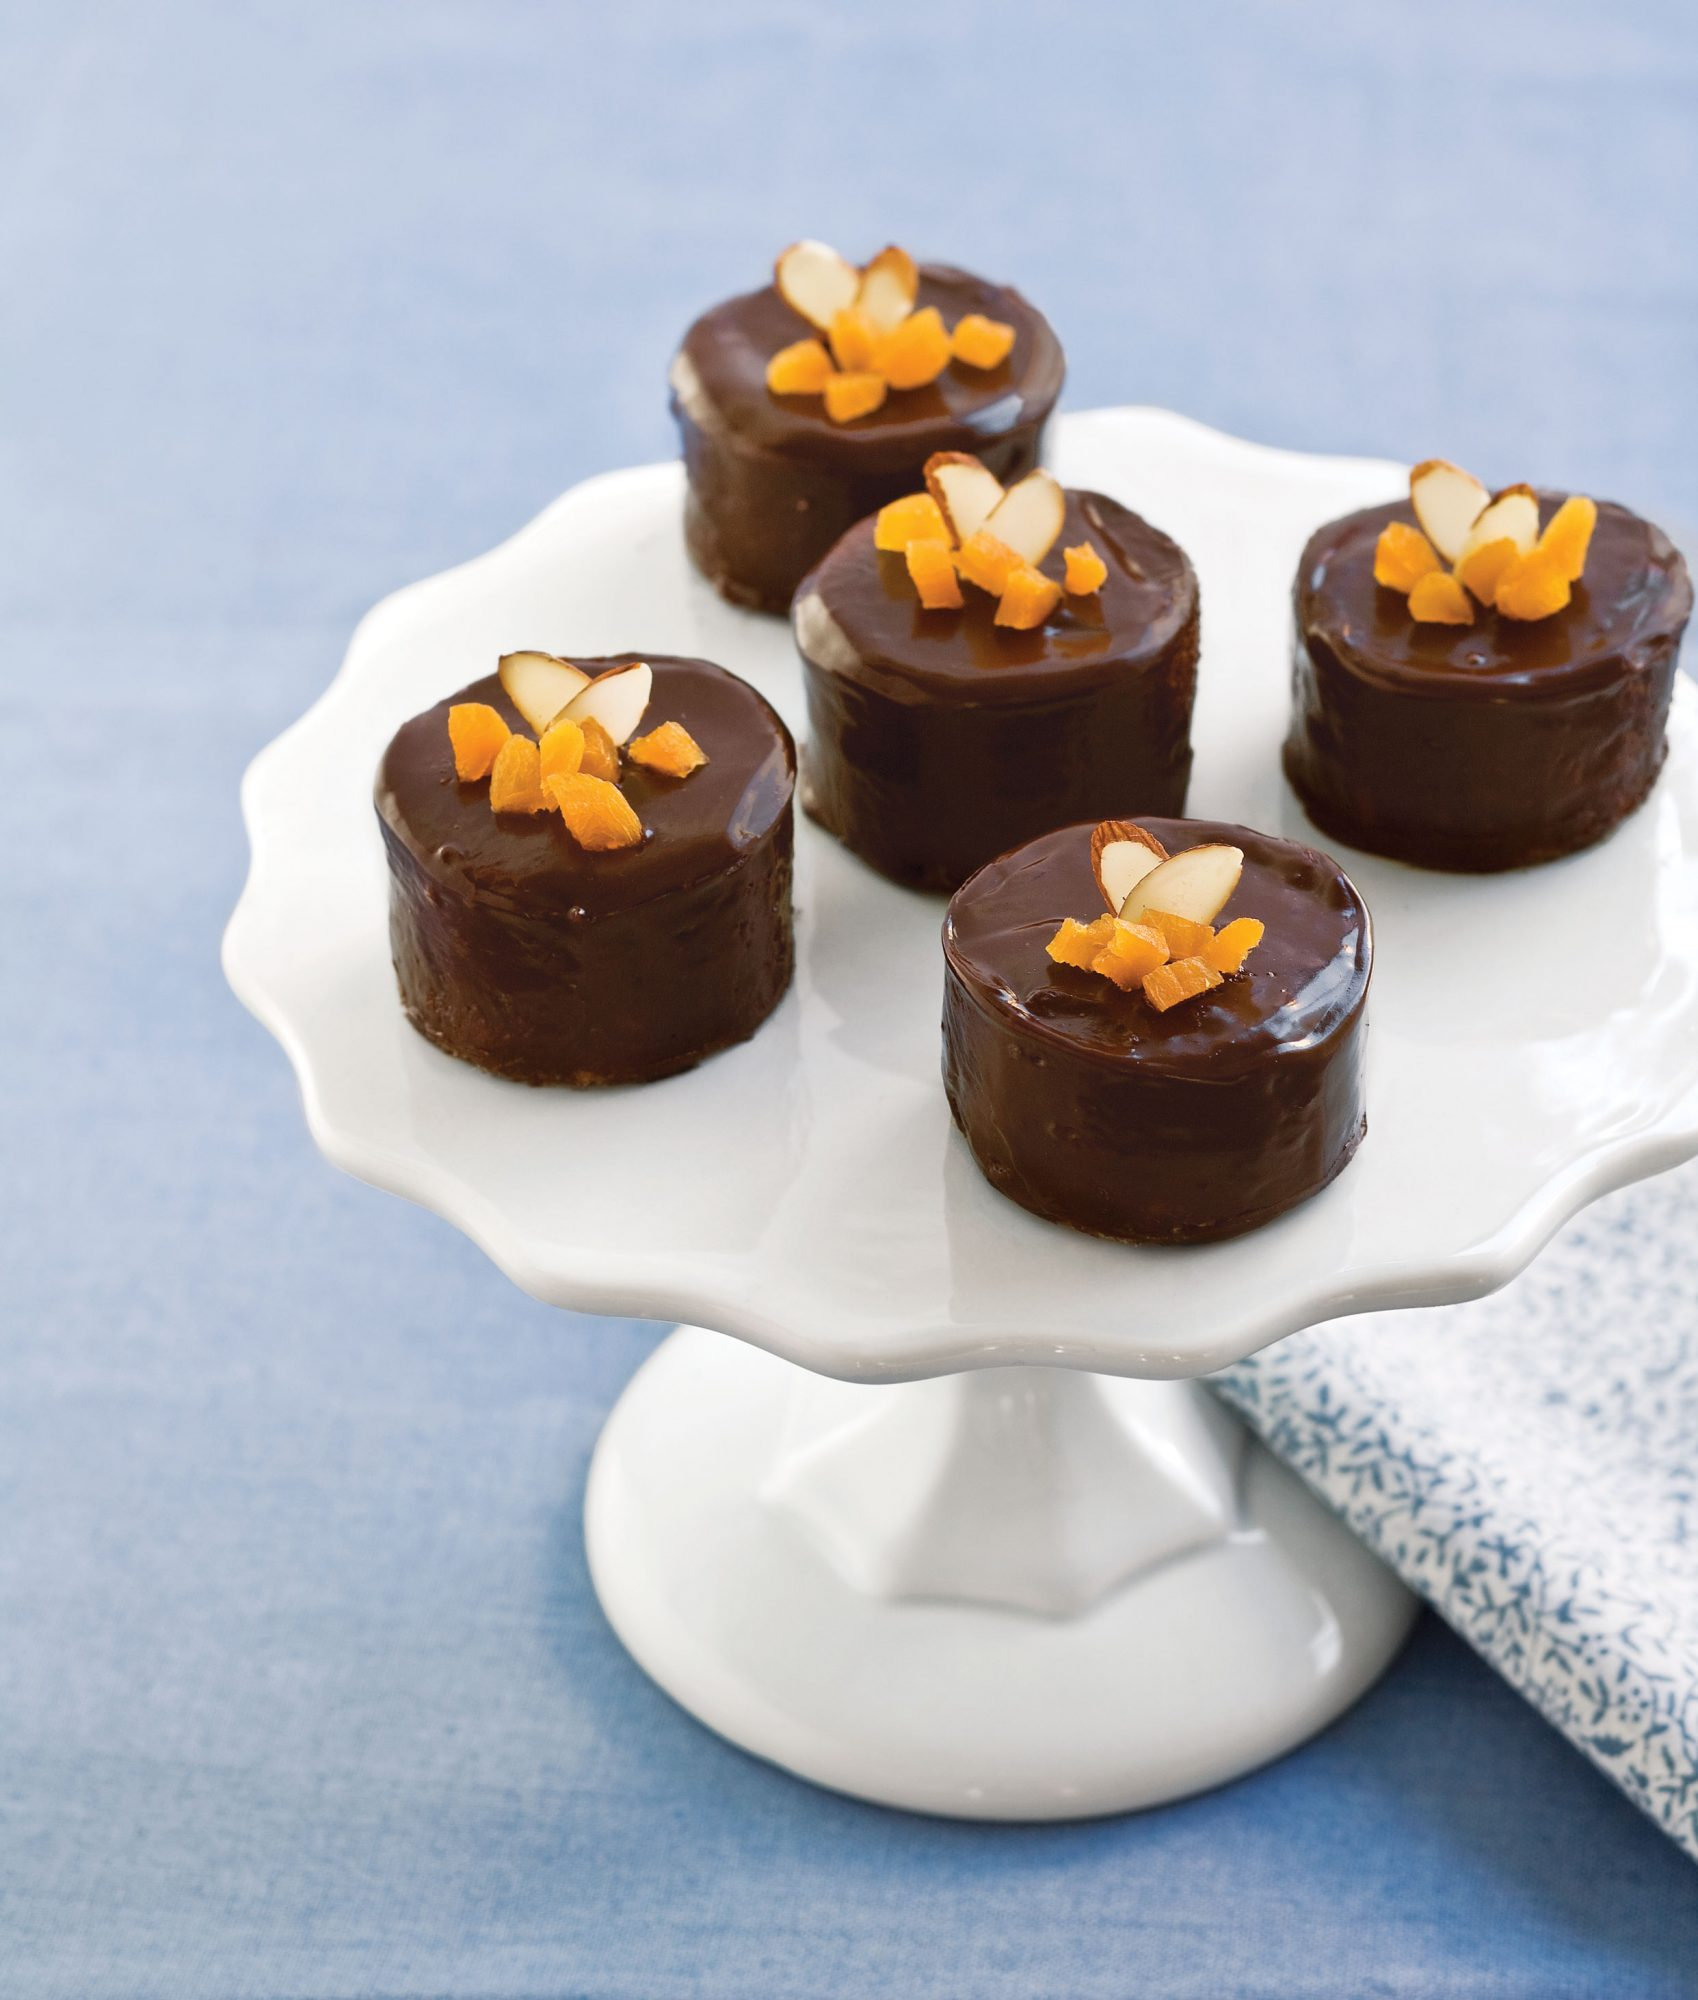 Chocolate-Almond Petits Fours